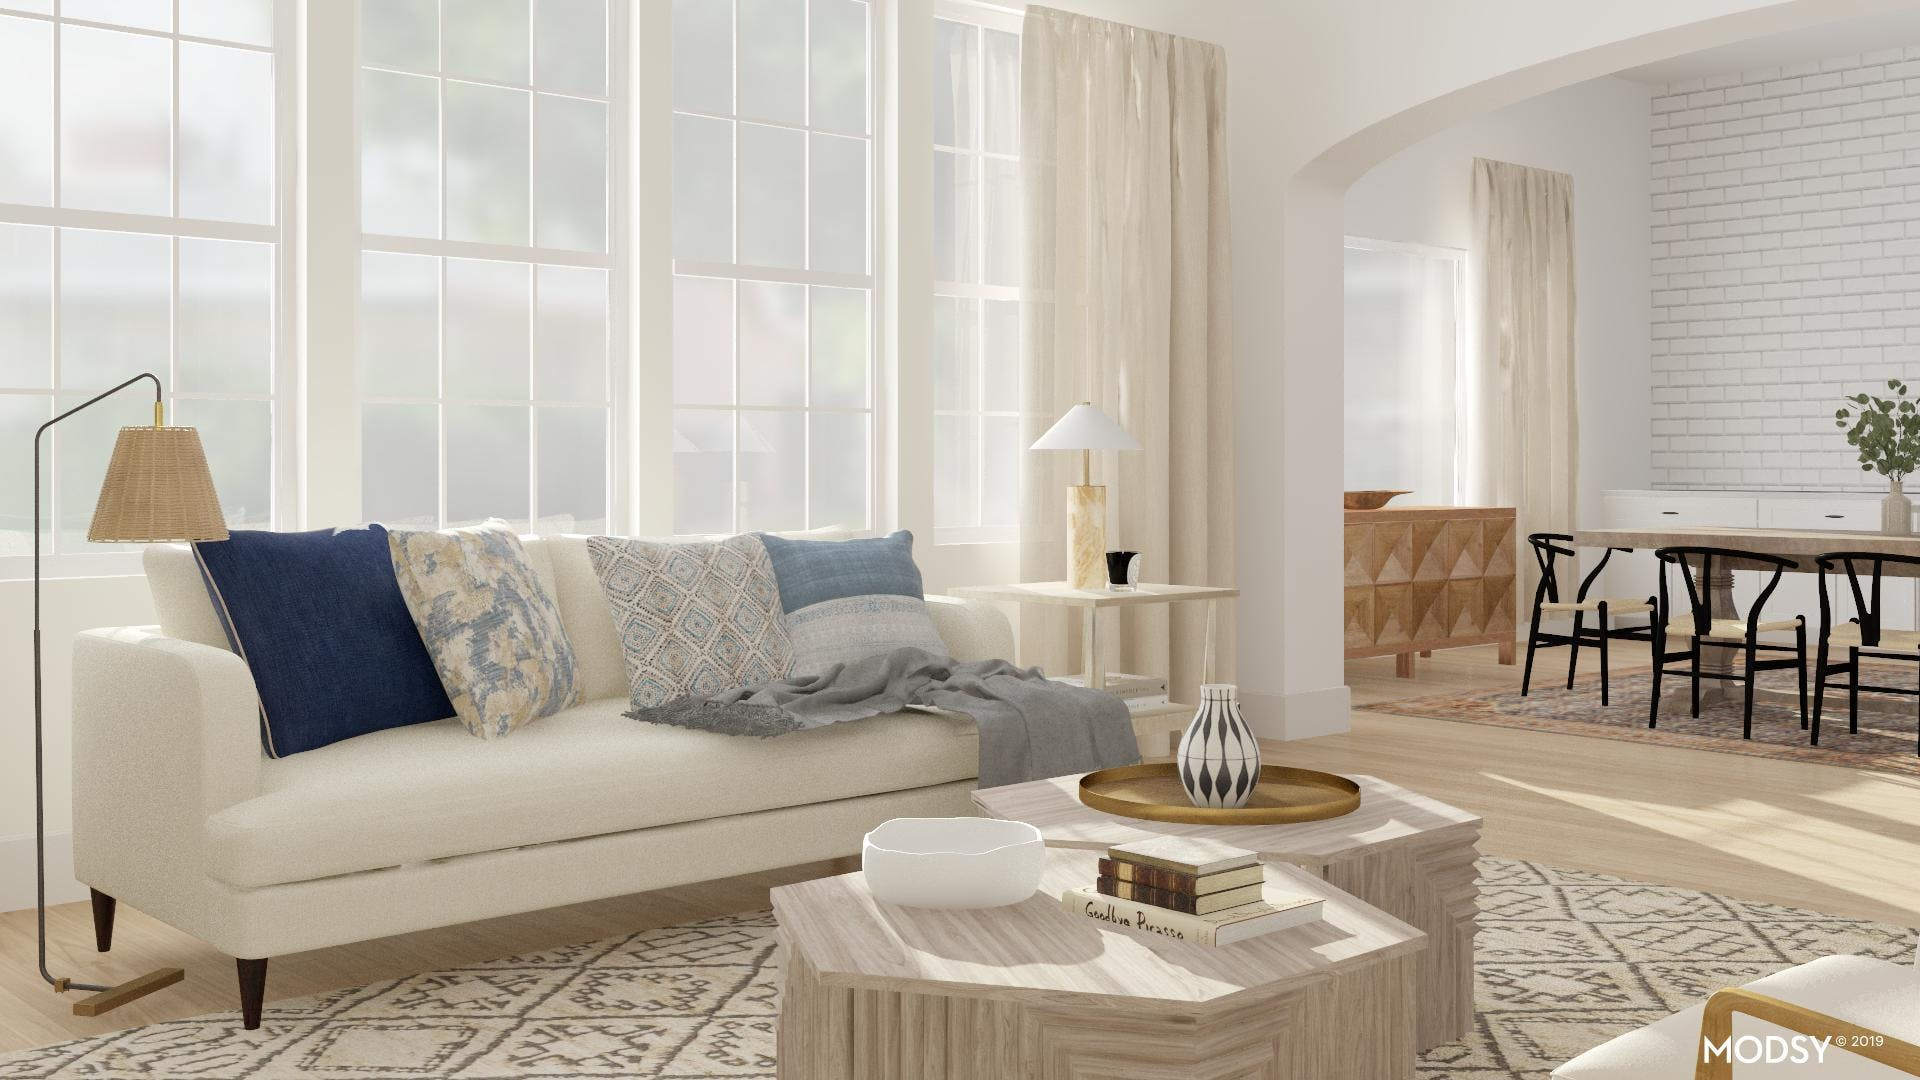 Light and Airy Open Living Room